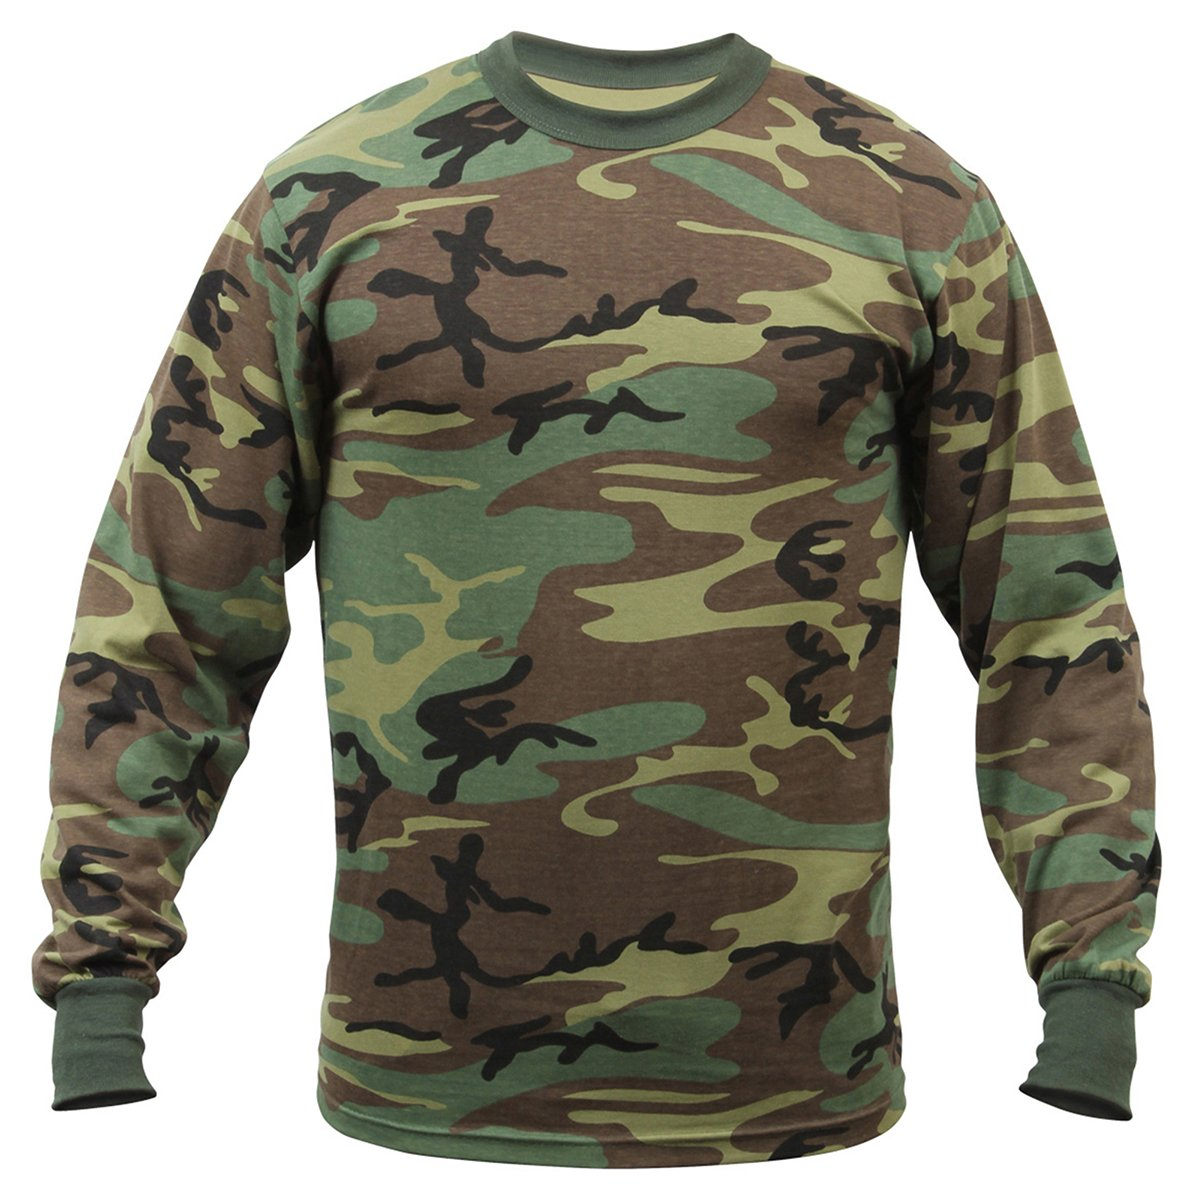 Rothco Long Sleeve T-Shirt, Woodland Camo, Medium 6778MED rco-6778_Camo_MED